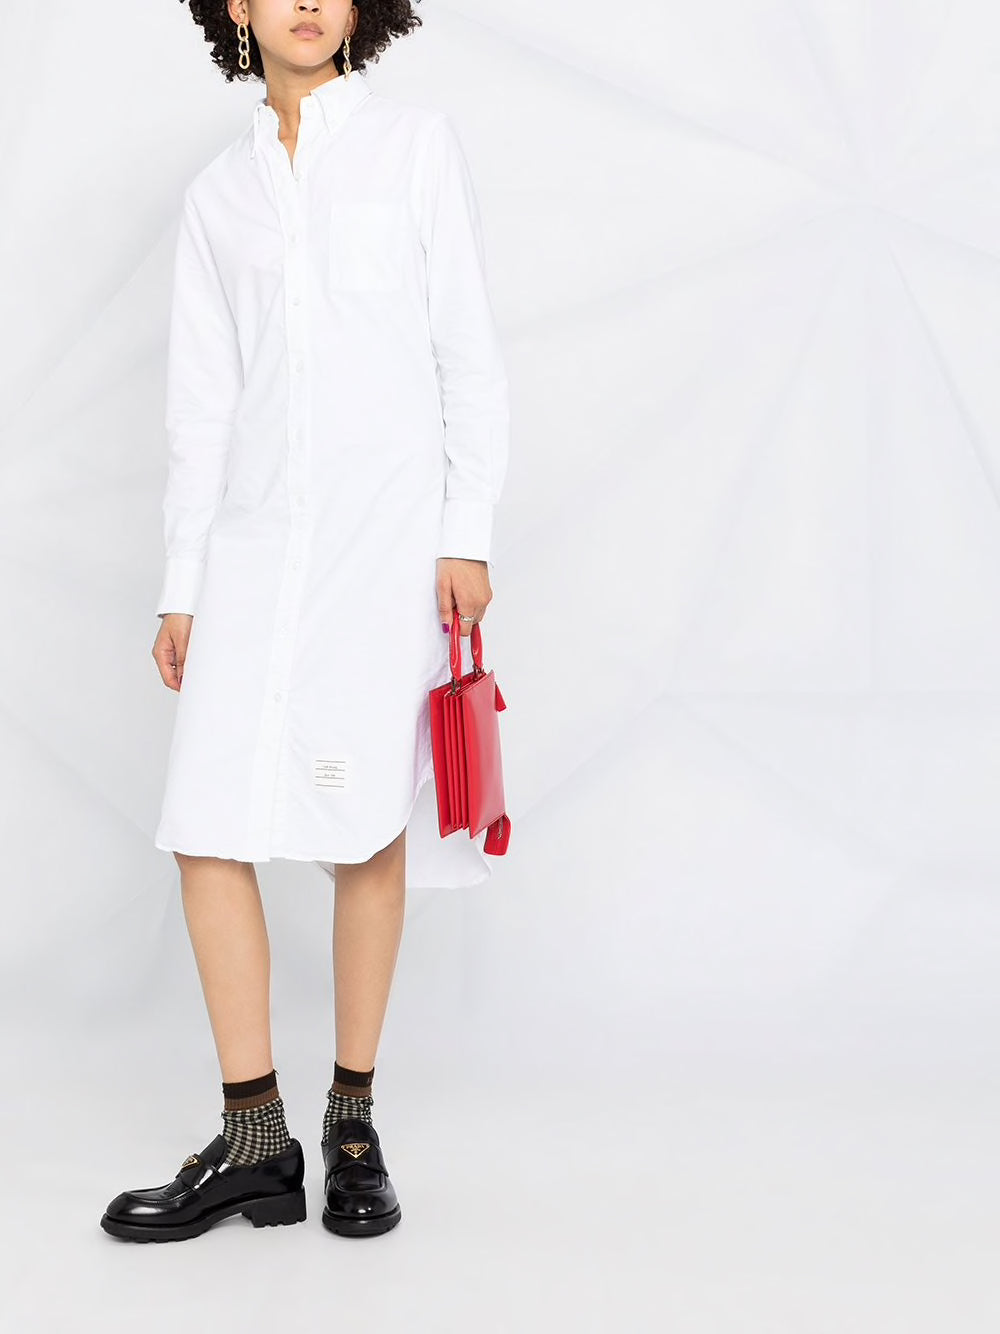 THOM BROWNE WOMEN KNEE LENGTH LONG SLEEVE POINT COLLAR SHIRTDRESS IN OXFORD WITH GG LOOP